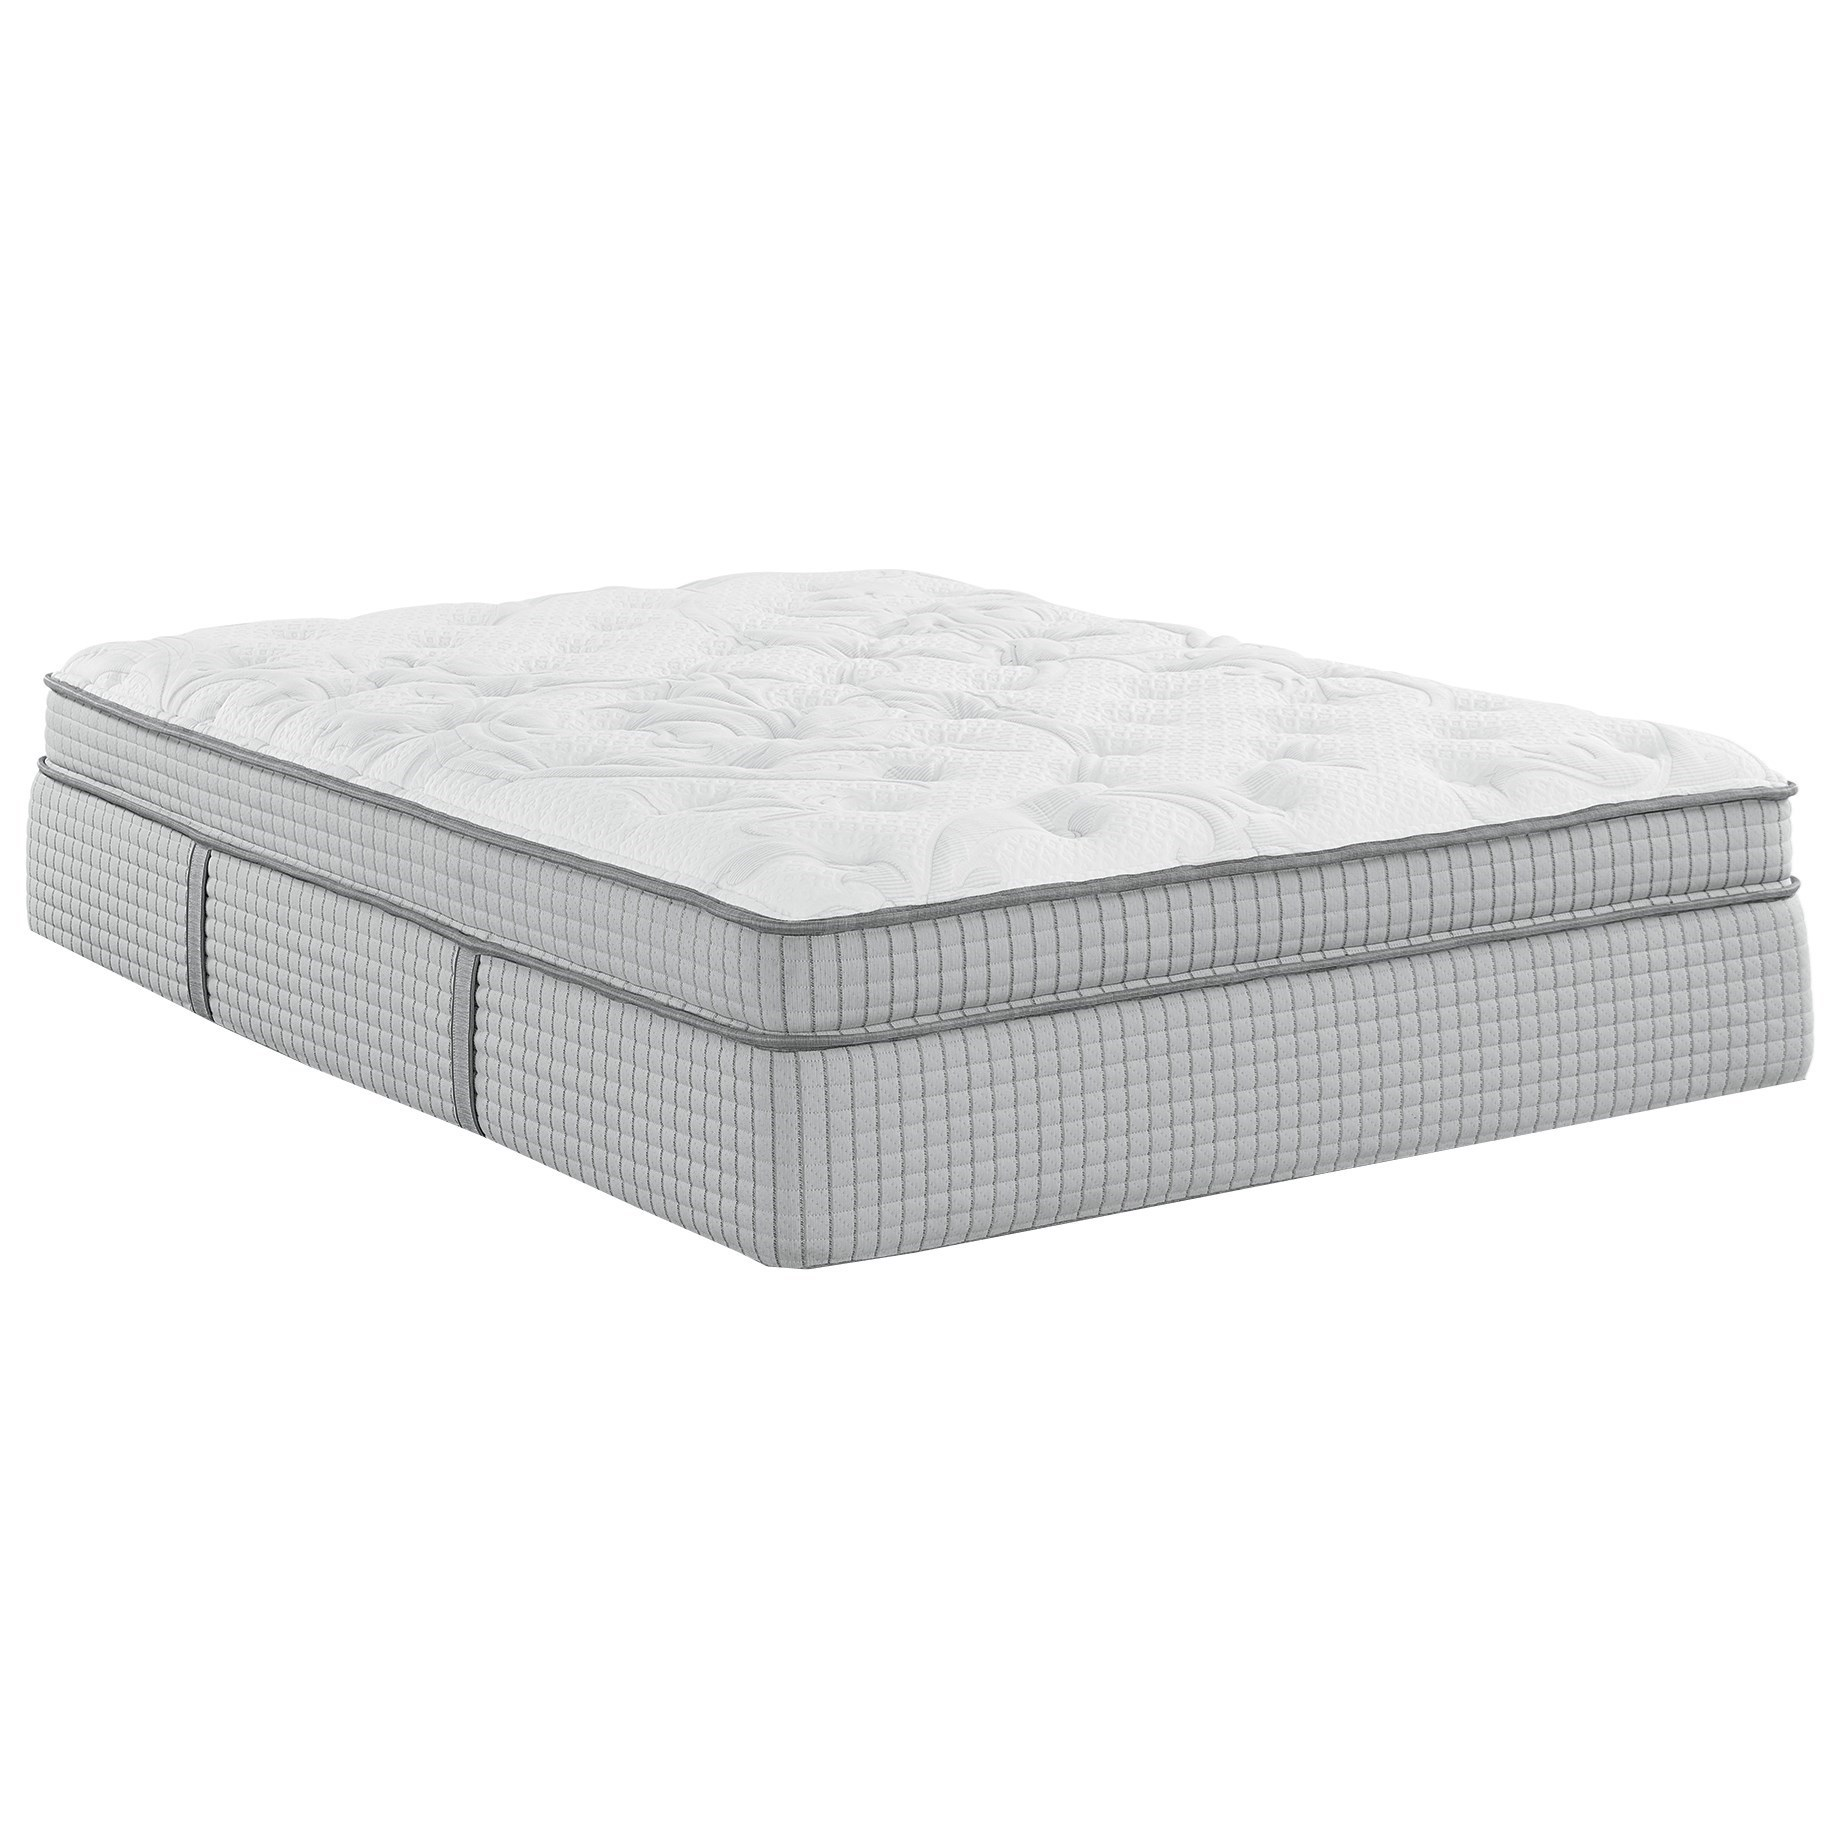 Biltmore House Euro Top Full Euro Top Coil on Coil Mattress by Restonic at Wilcox Furniture